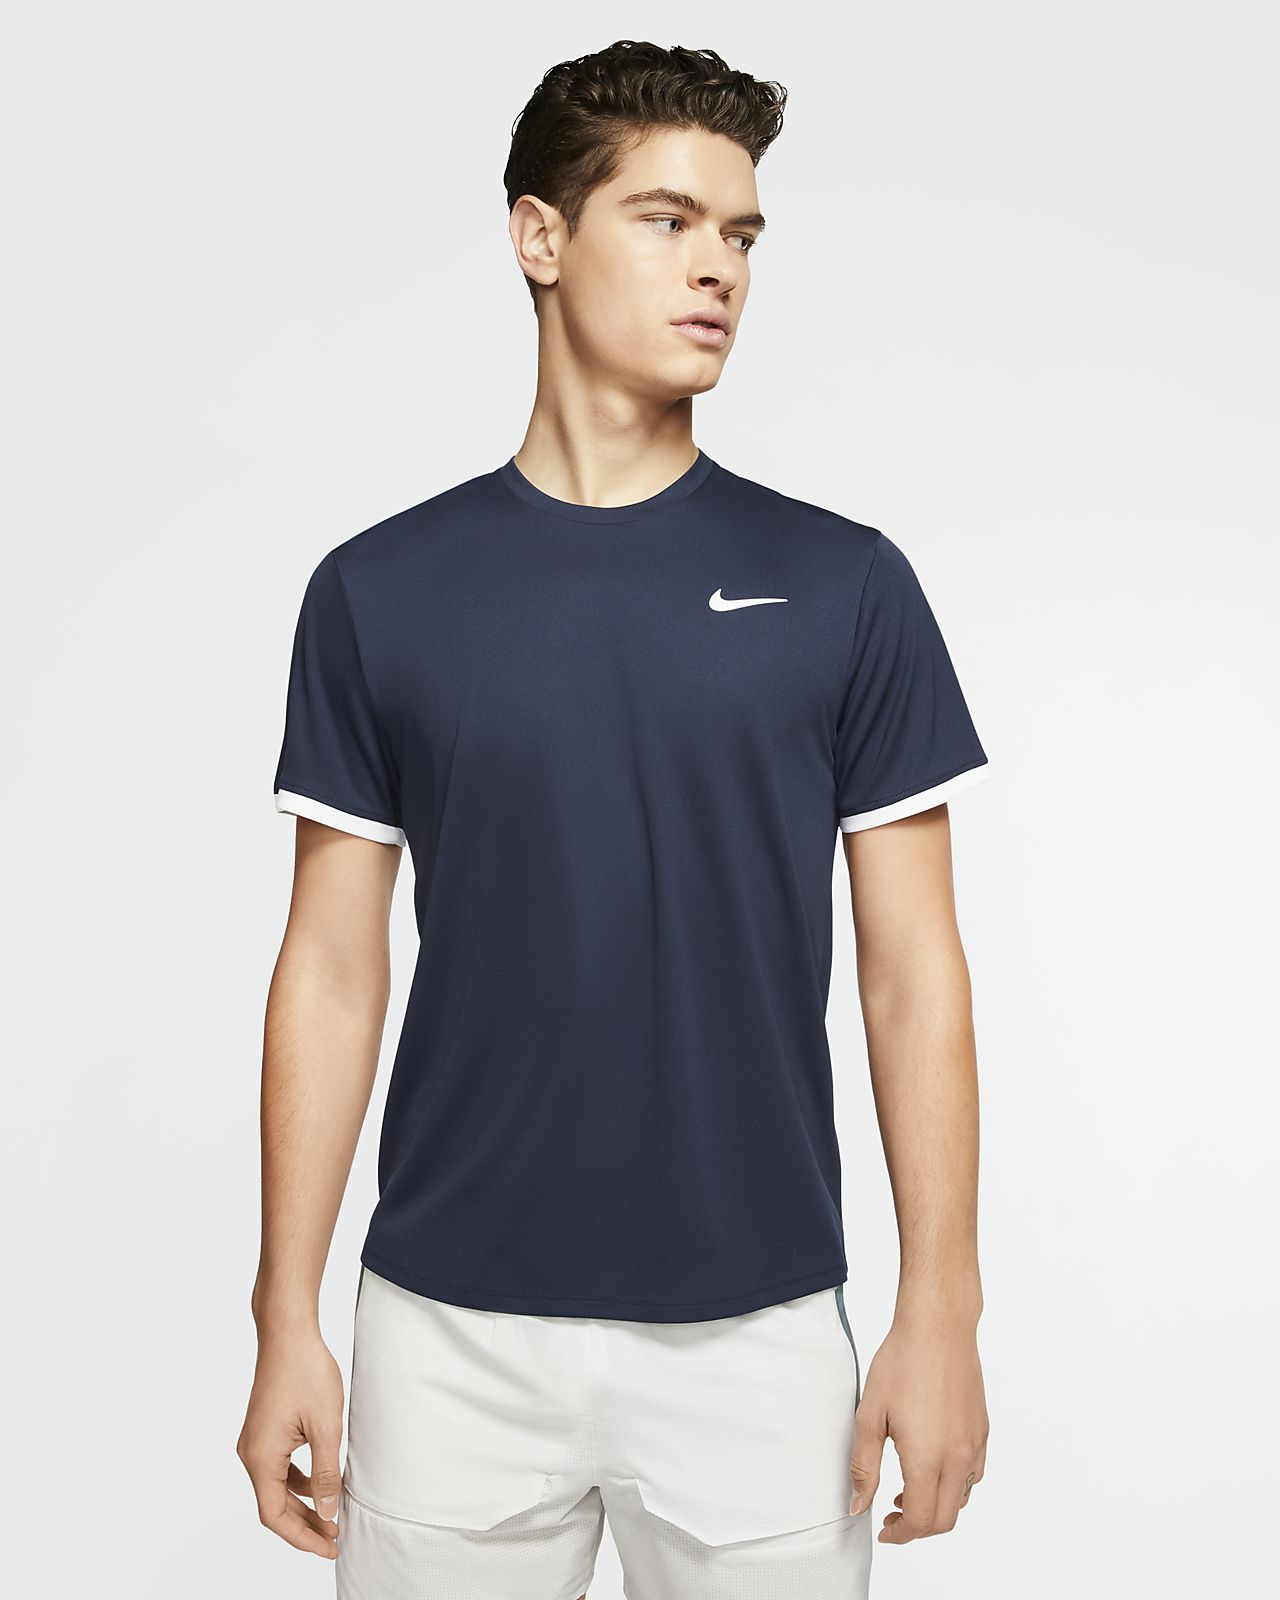 Nikecourt Mens Dri-Fit shirt 939134